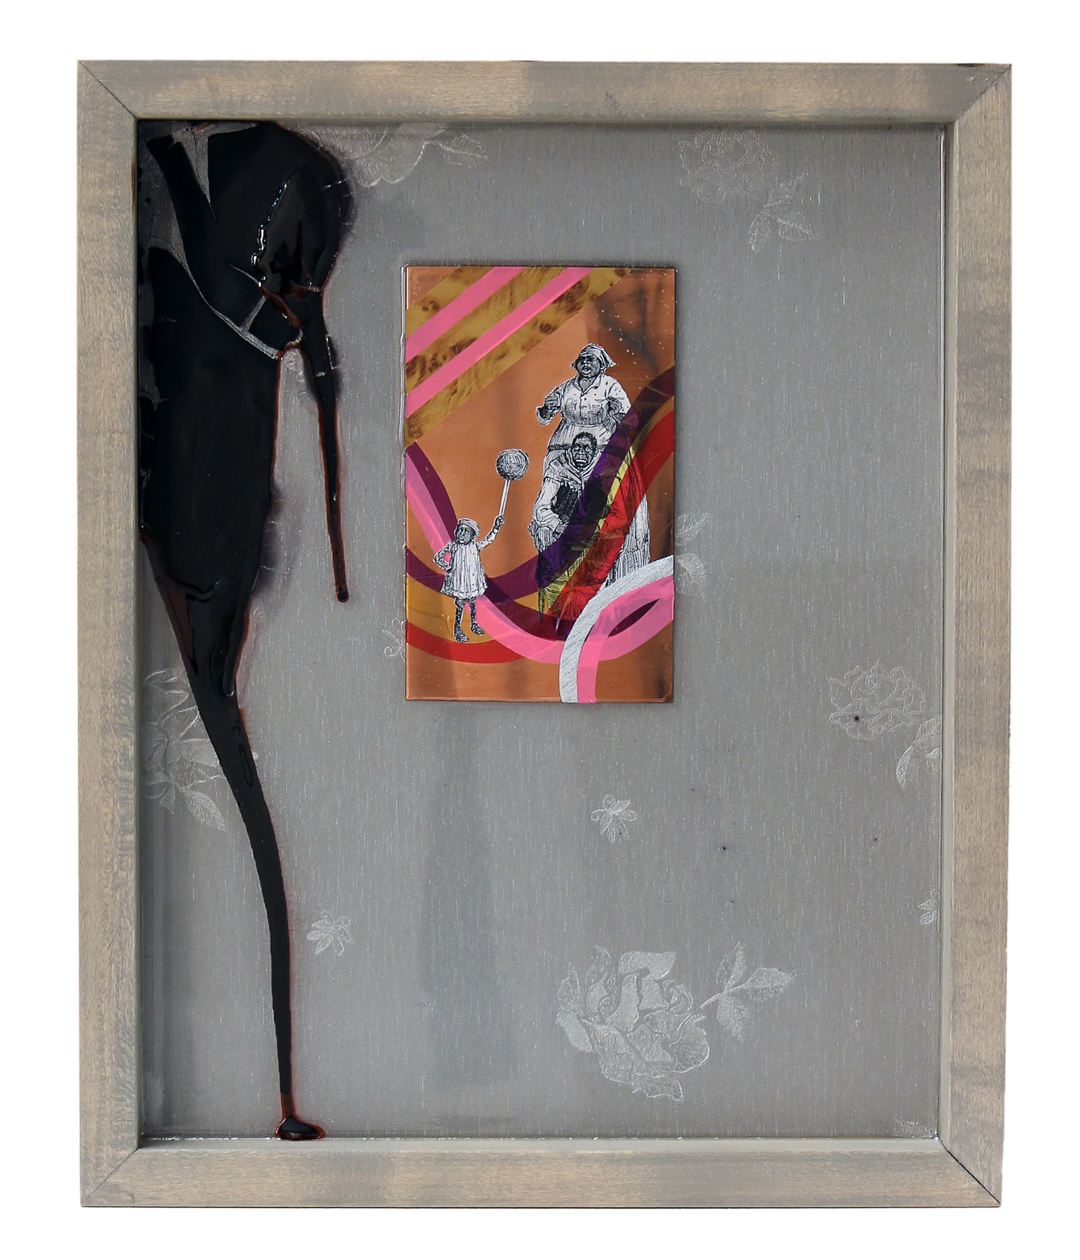 "Island Suite Part 6: Here Comes The Wonderful!   2016 16"" x 13"" Paper, copper plate, cellophane, vinyl and shoe polish in wood frame"